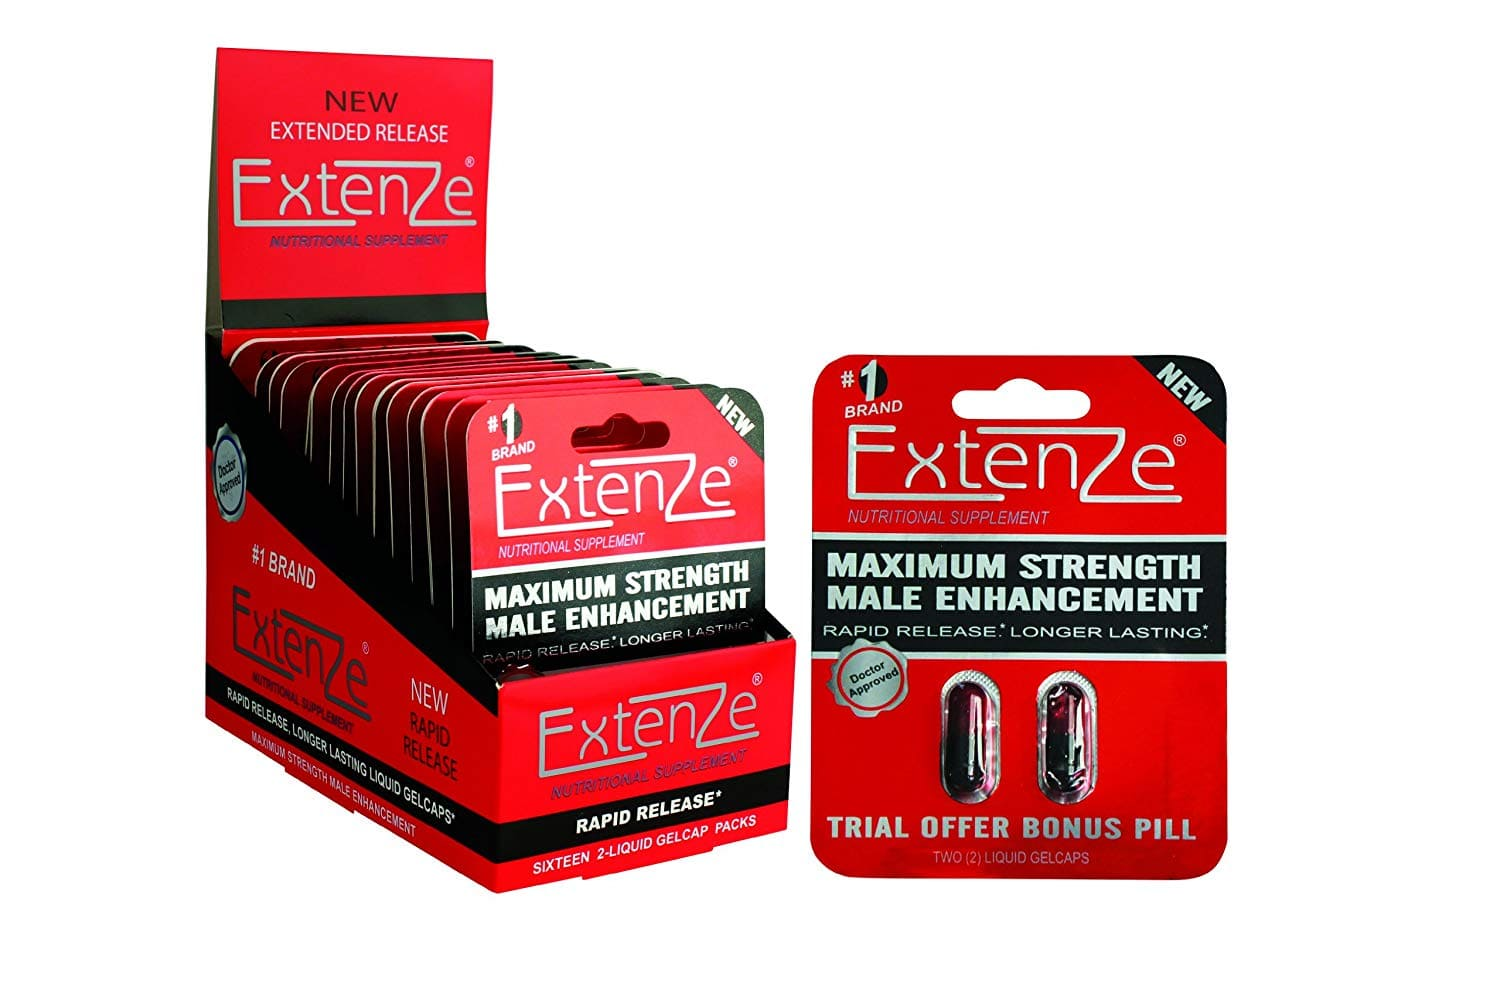 Extenze Male Enhancement Pills payment plan